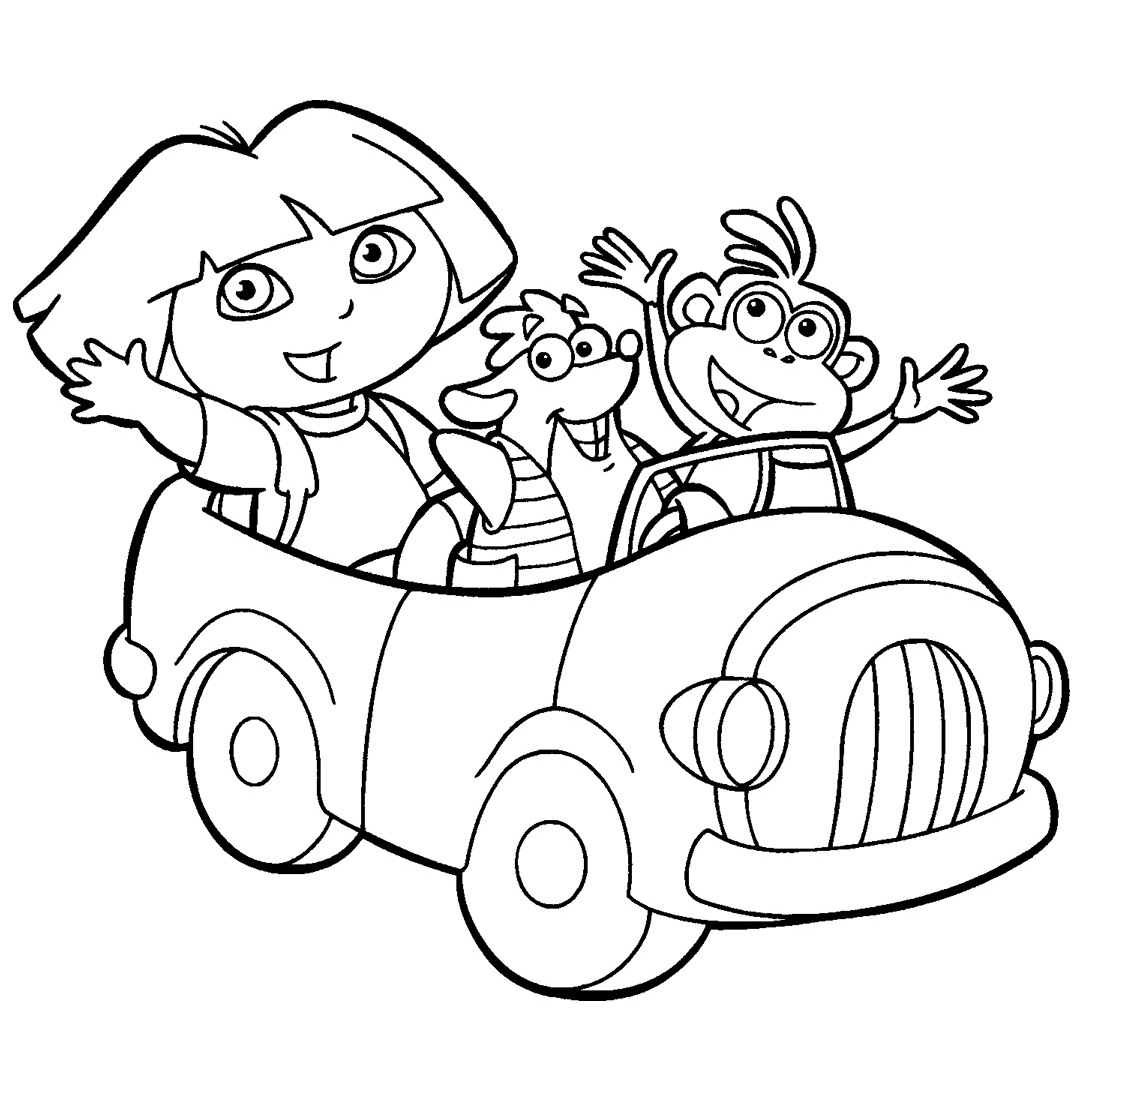 coloring pages of dora craftsactvities and worksheets for preschooltoddler and of pages coloring dora